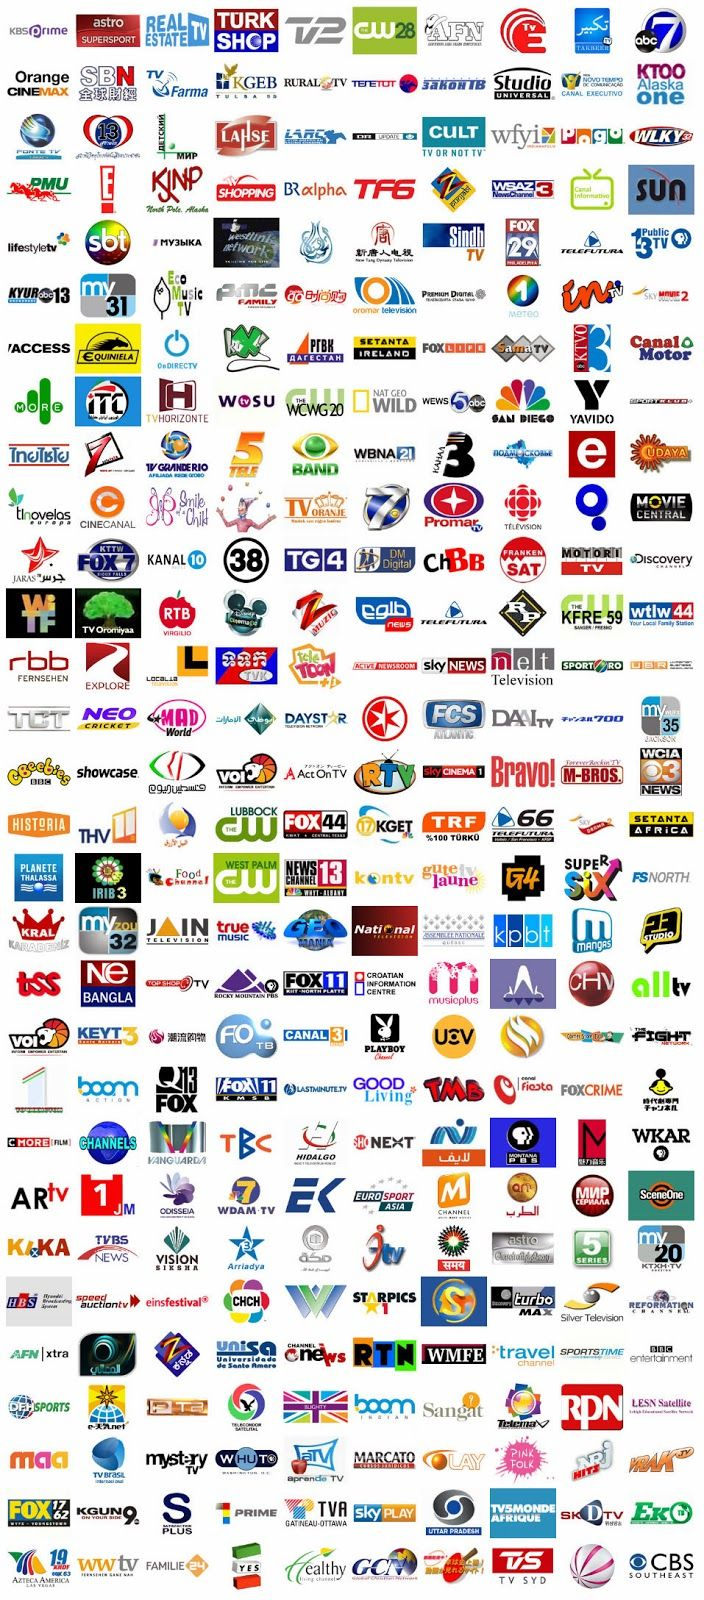 tv channel logos and names | logos | pinterest | logos, tv channel